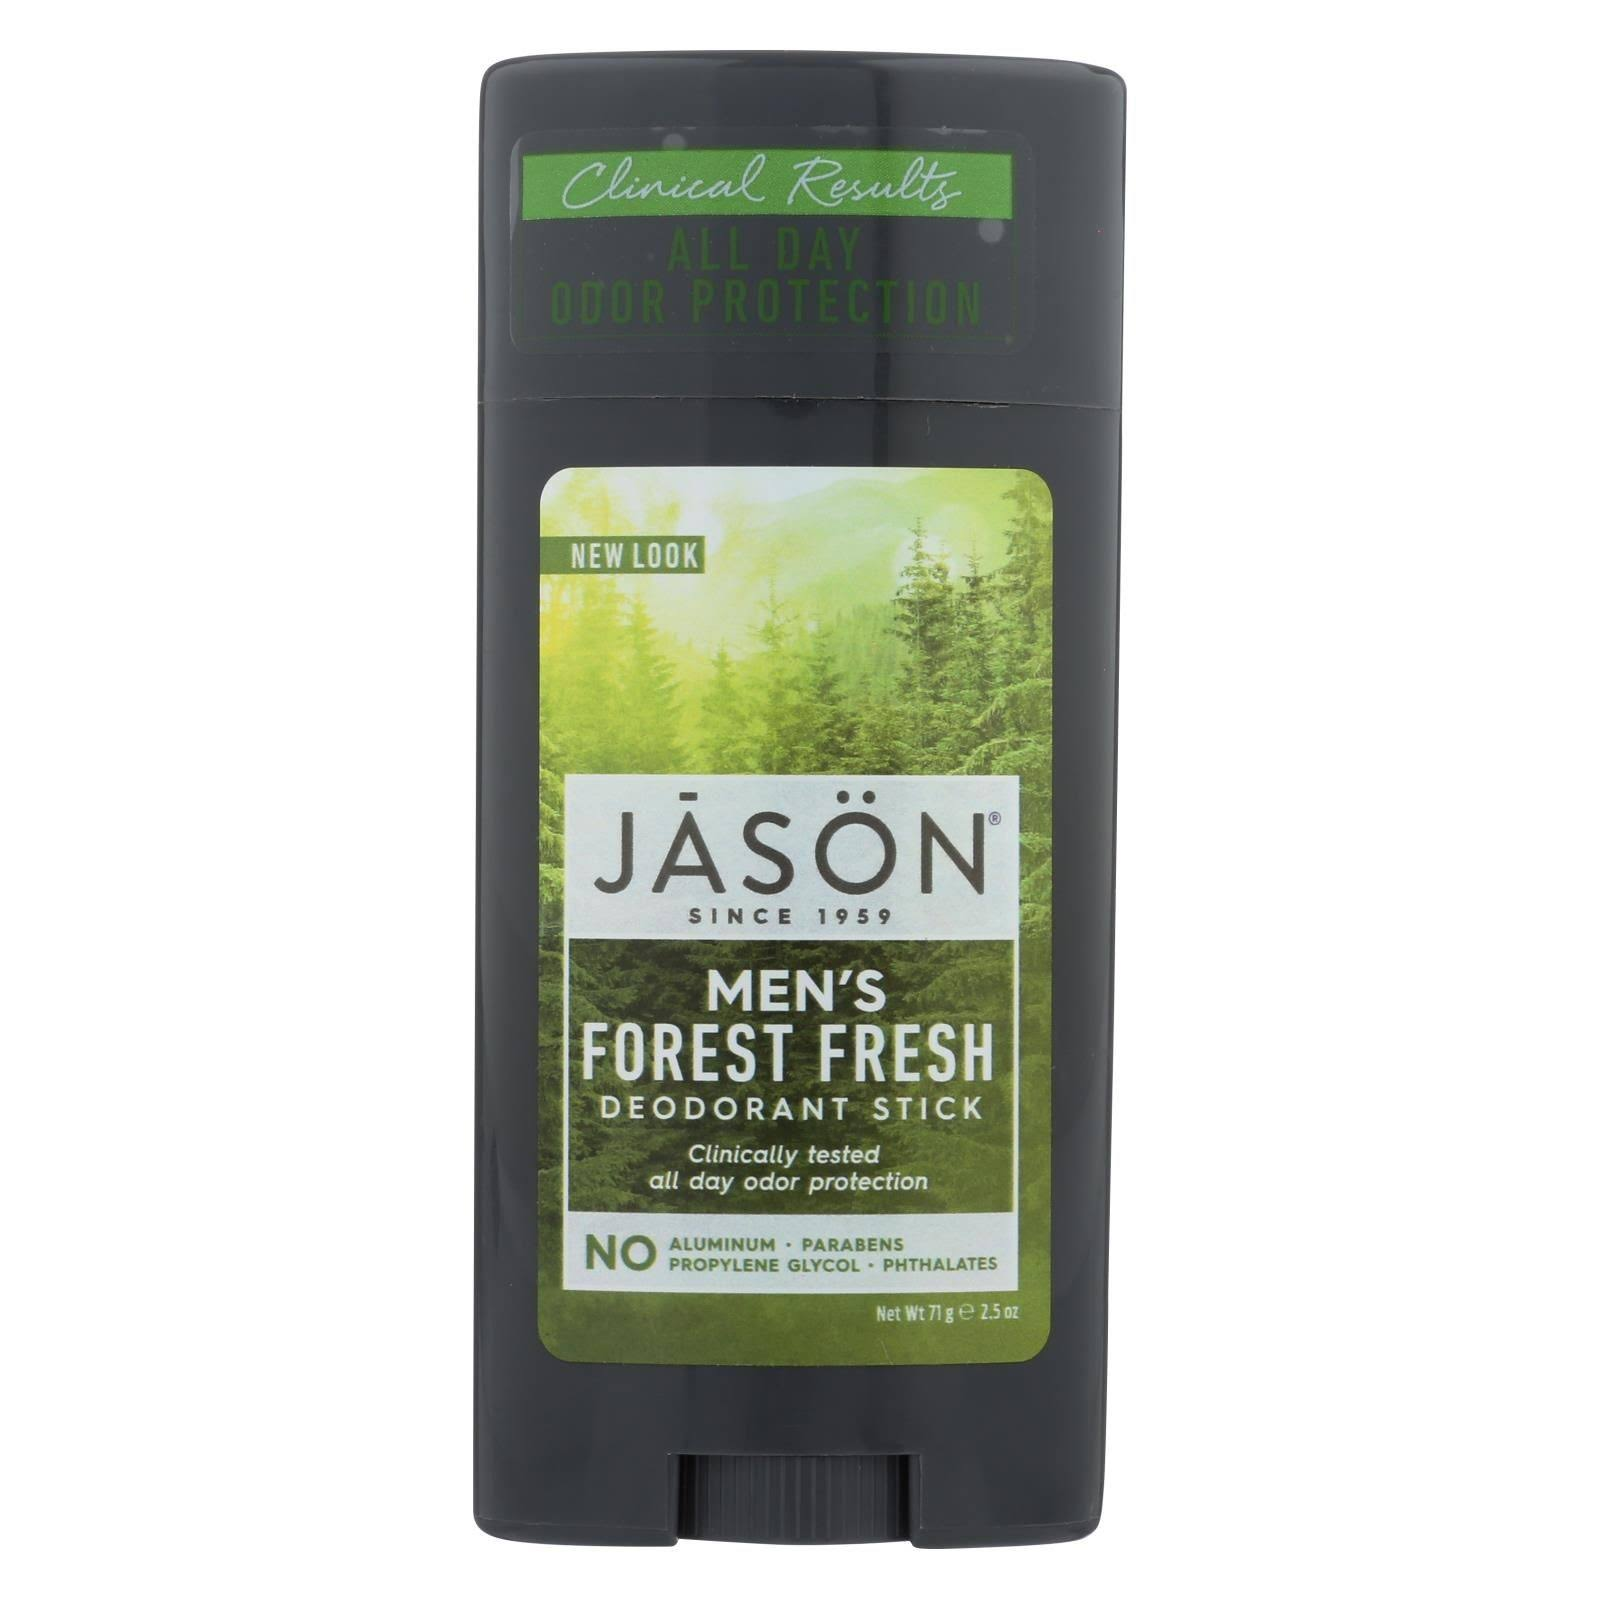 Jason Men Deodorant Stick - Forest Fresh, 2.5oz